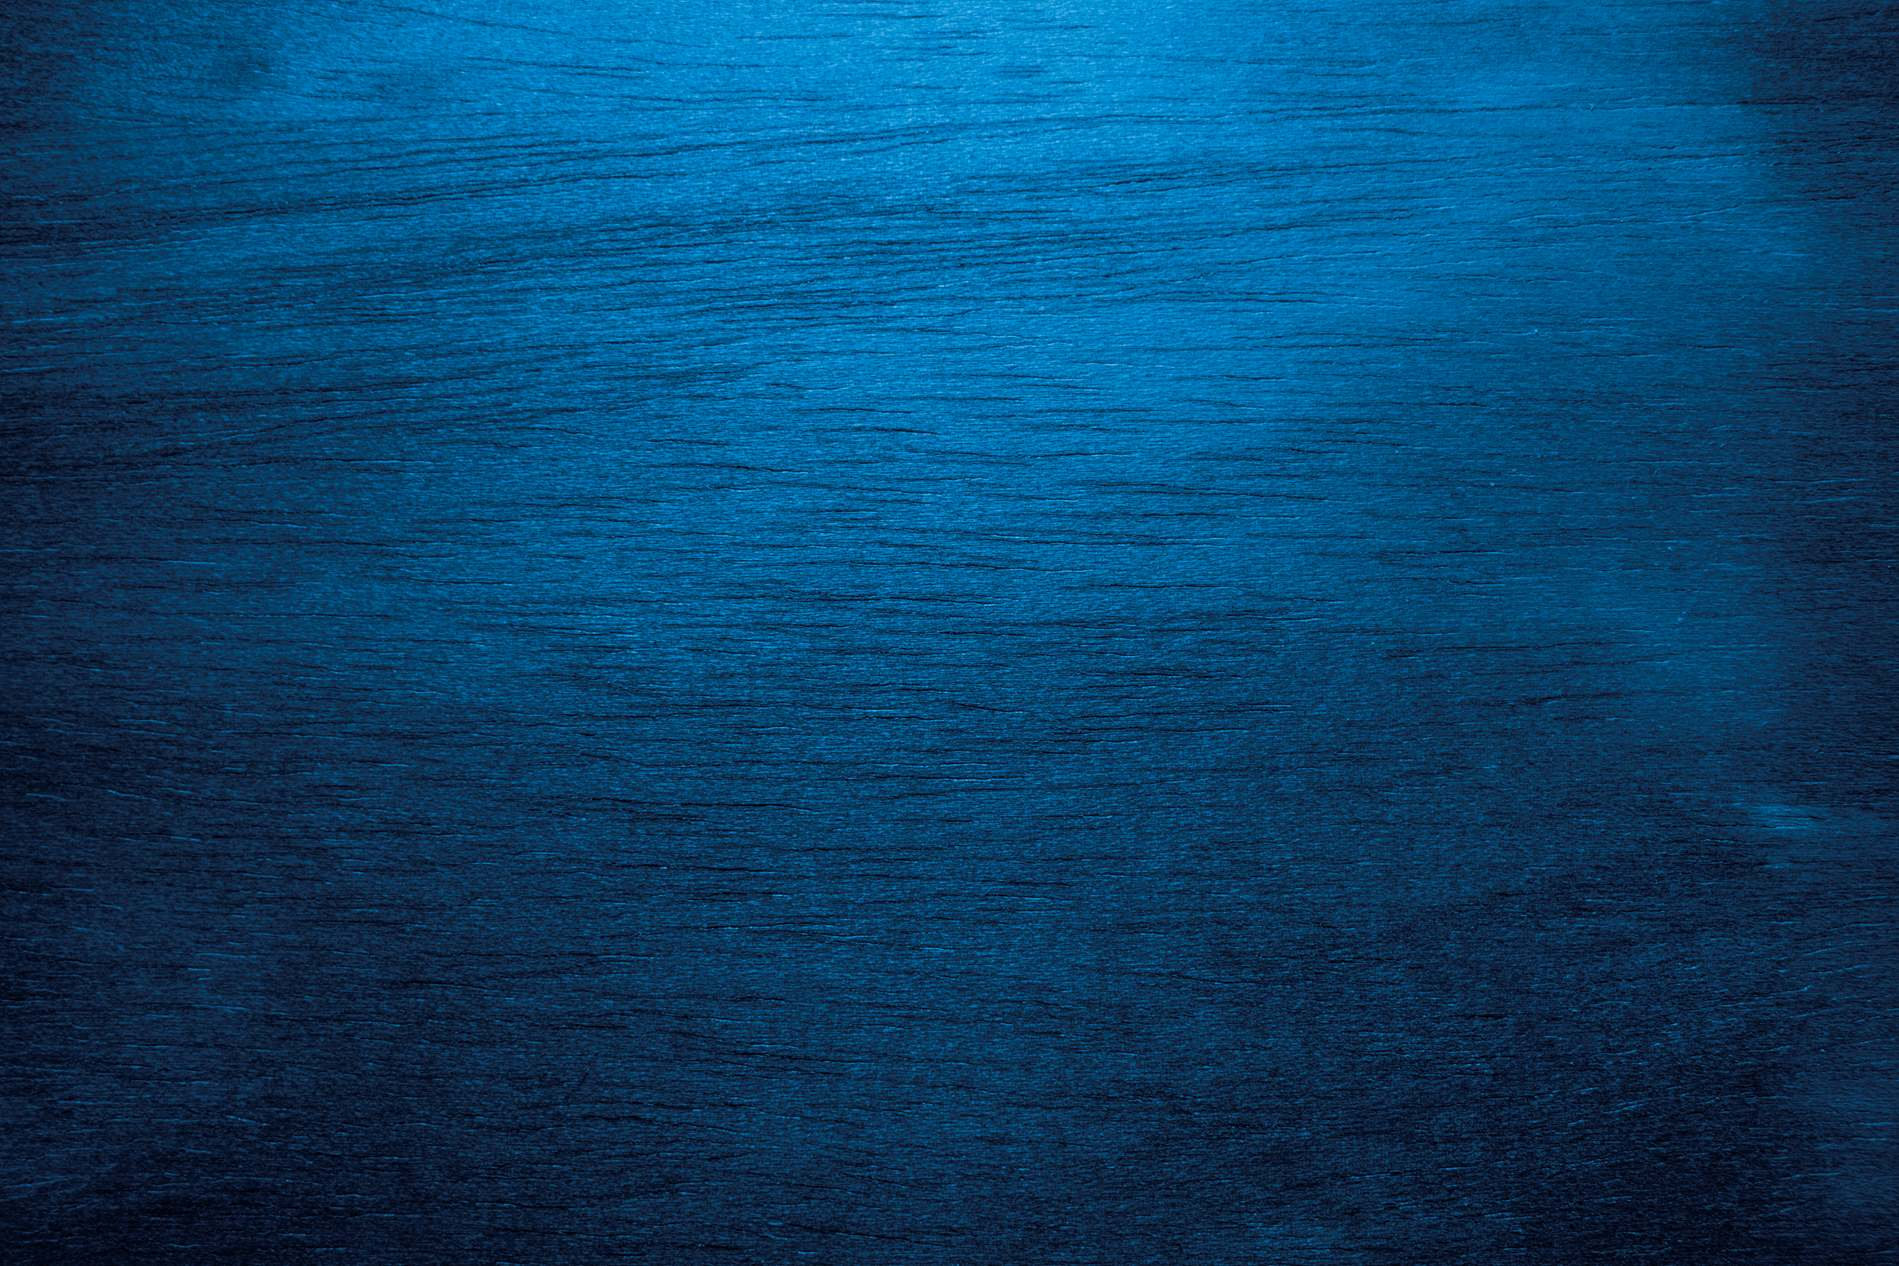 Dark blue vintage background texture photohdx for Textures and backgrounds